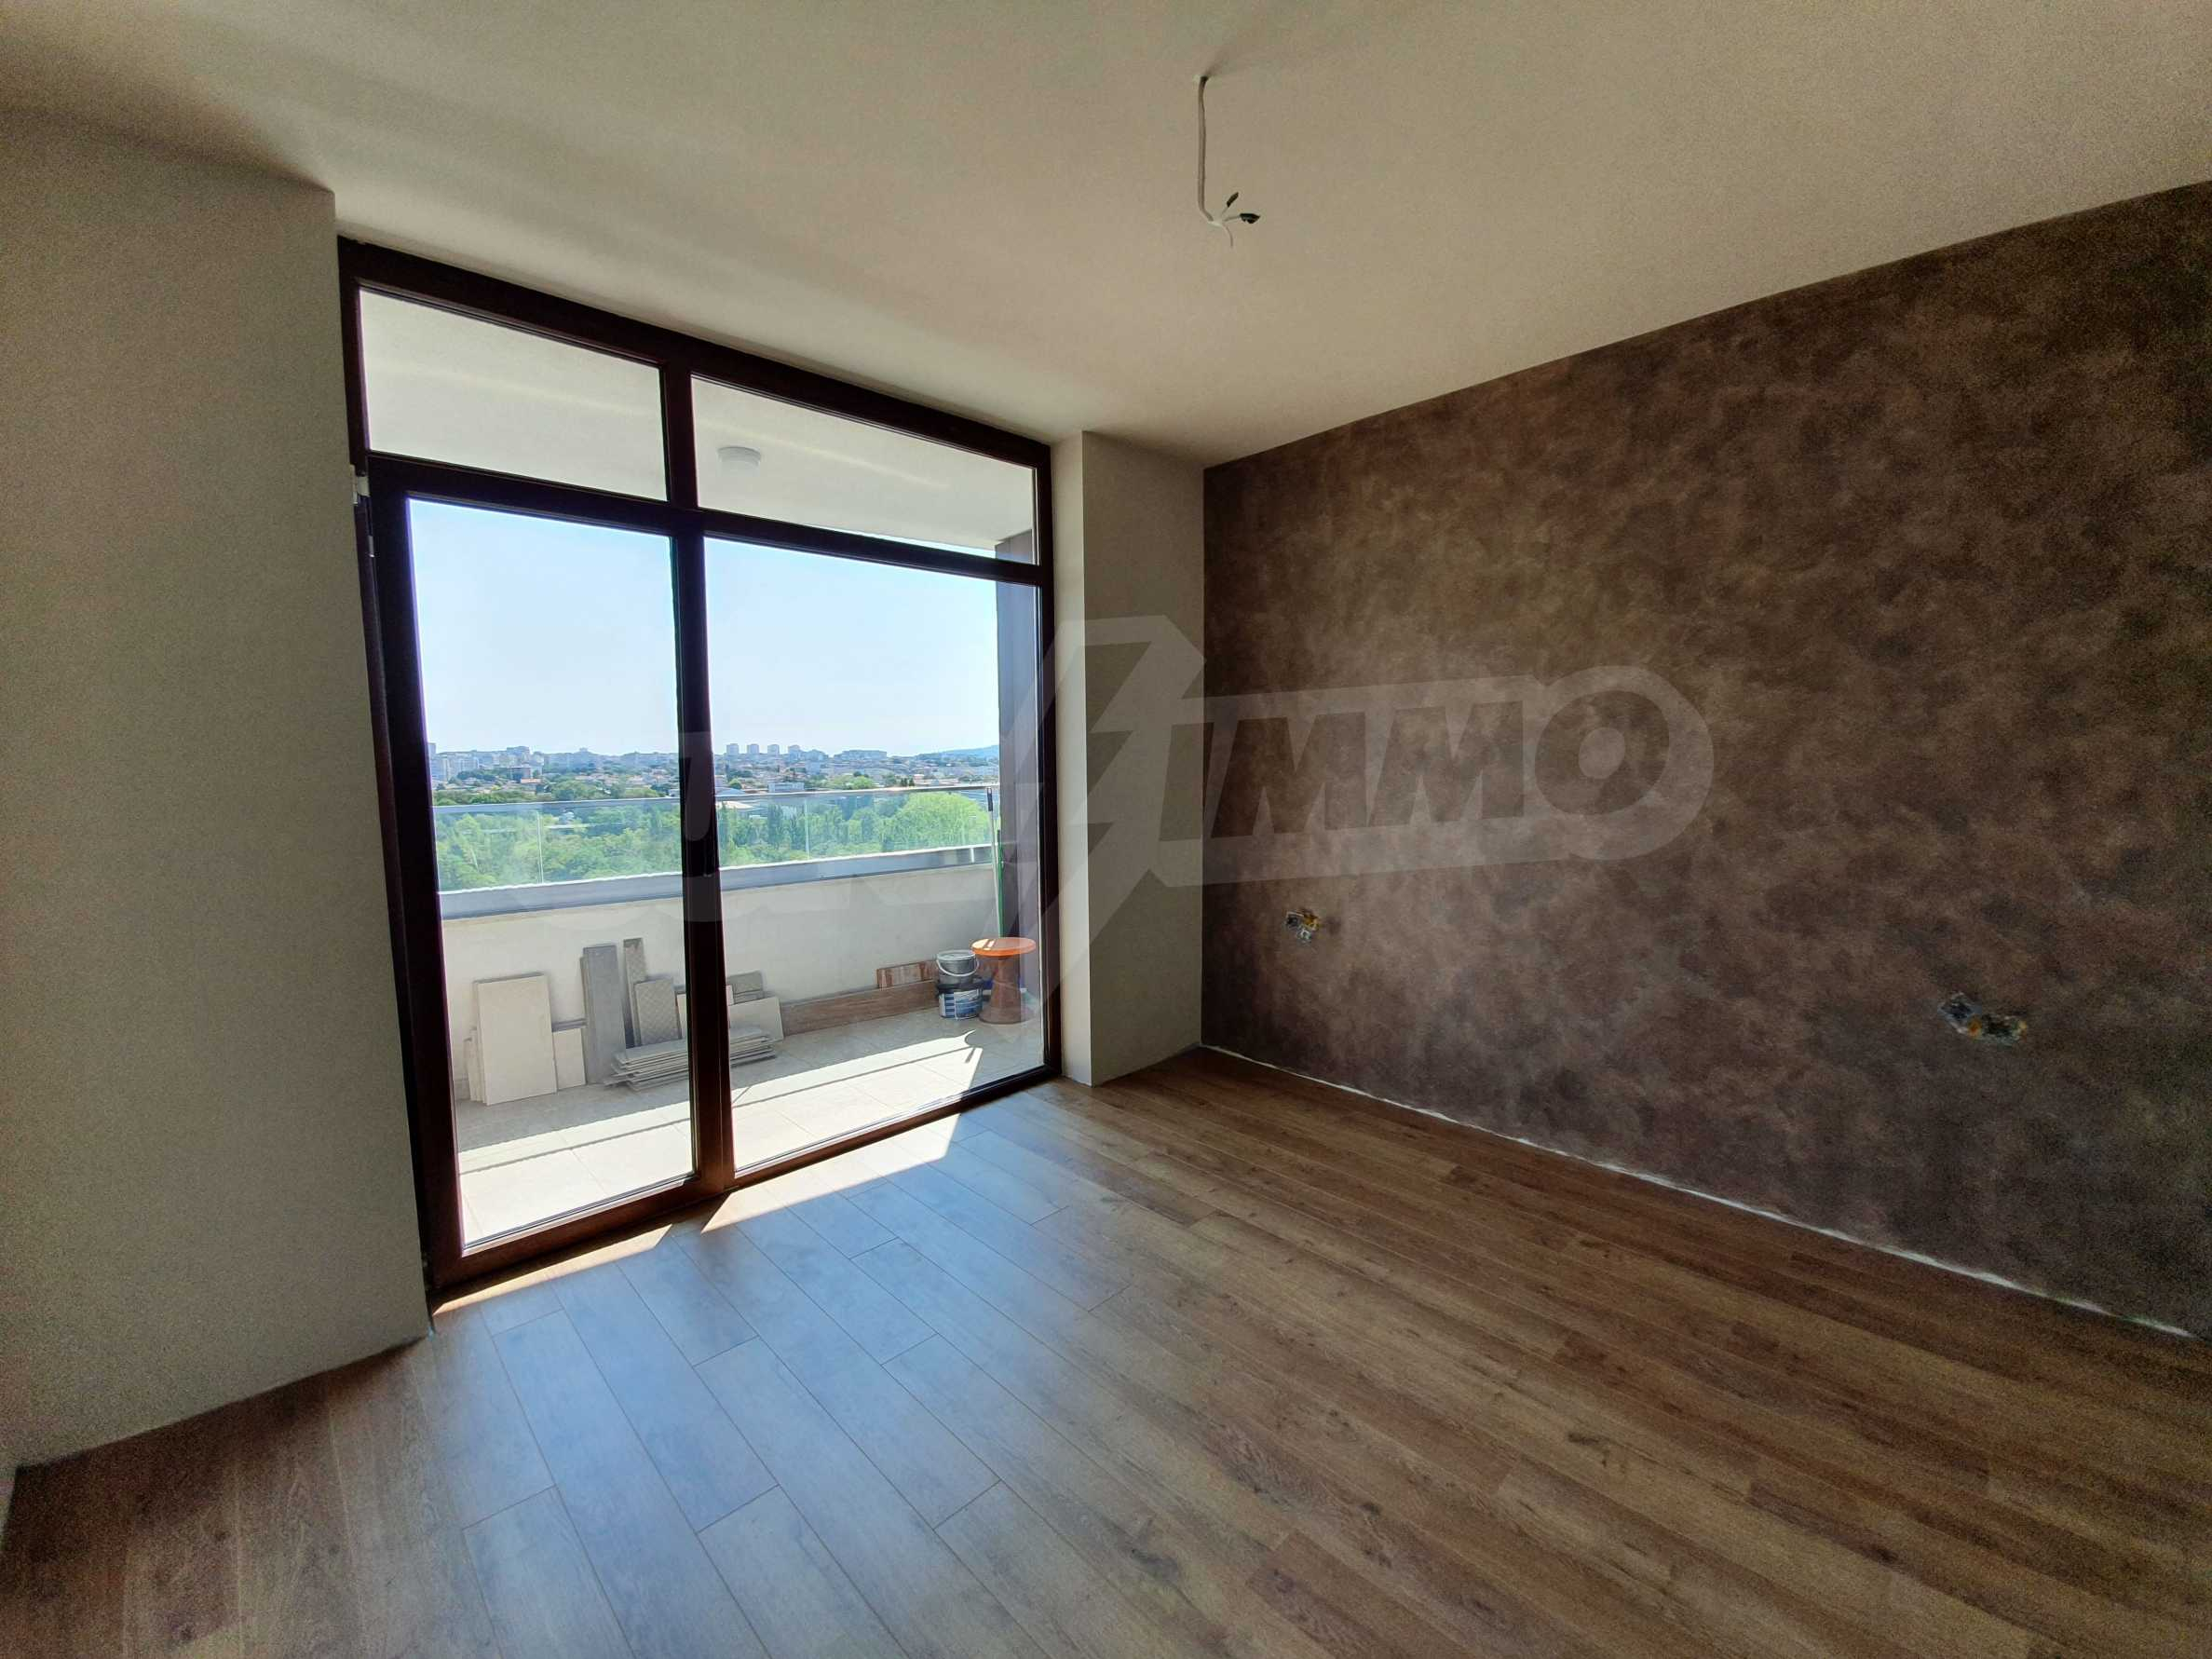 Panoramic two-bedroom apartment with views of the lake and Varna 15